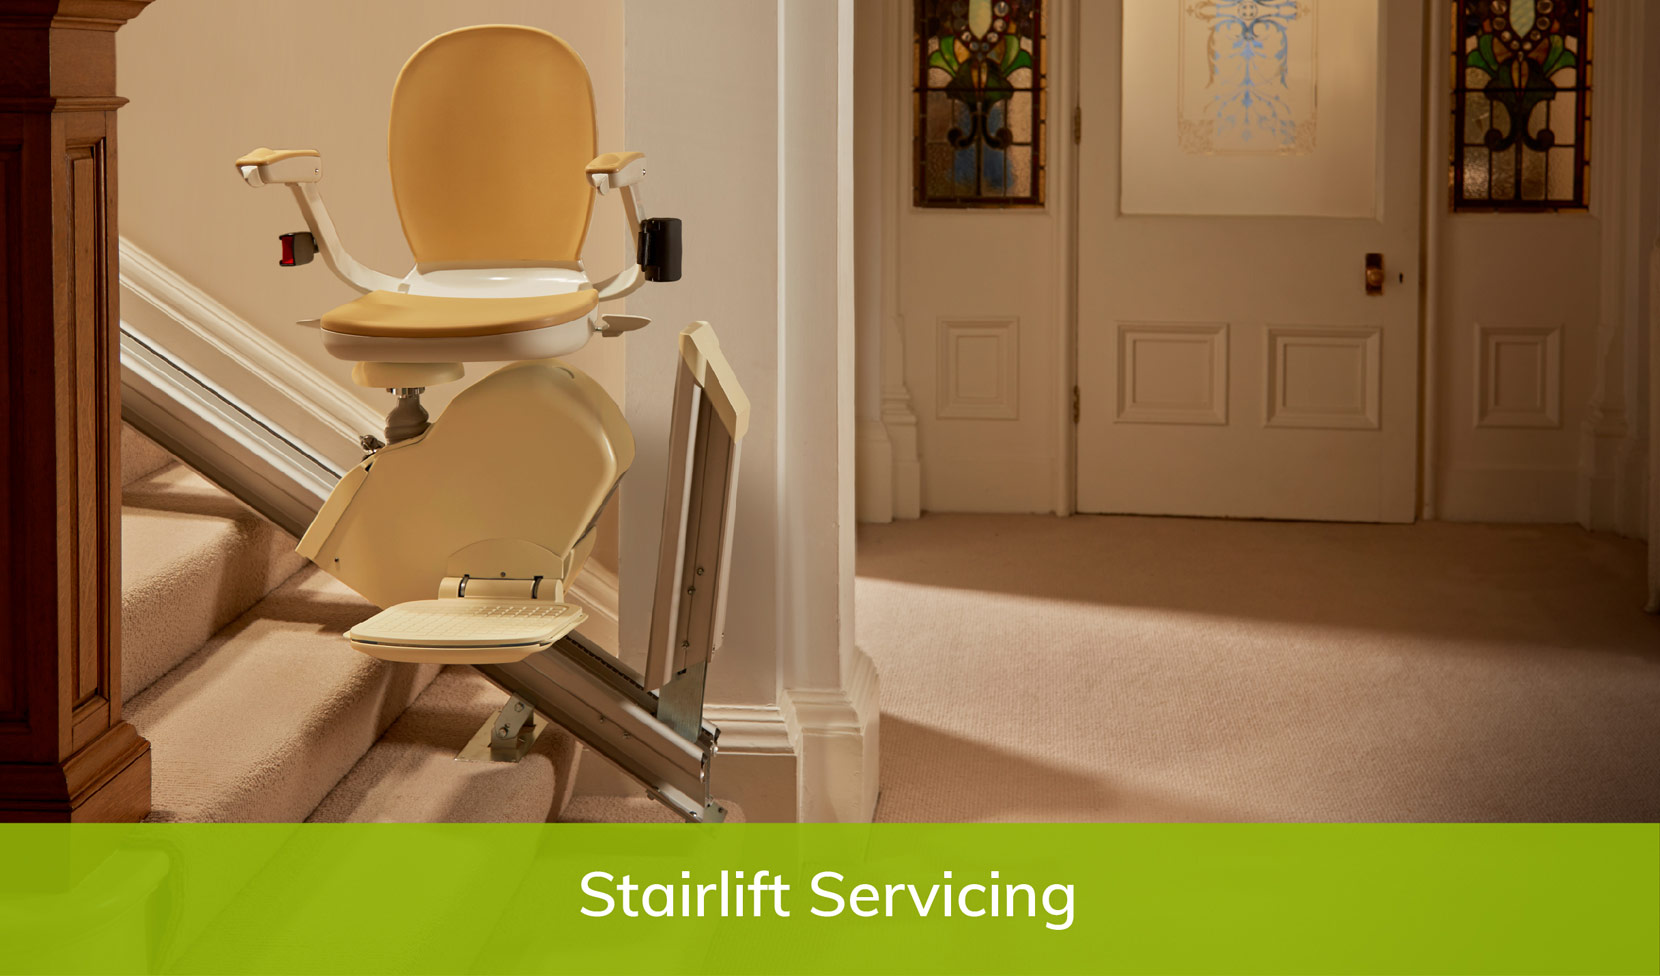 Stairlift repair near me page servicing image of a straight stairlift